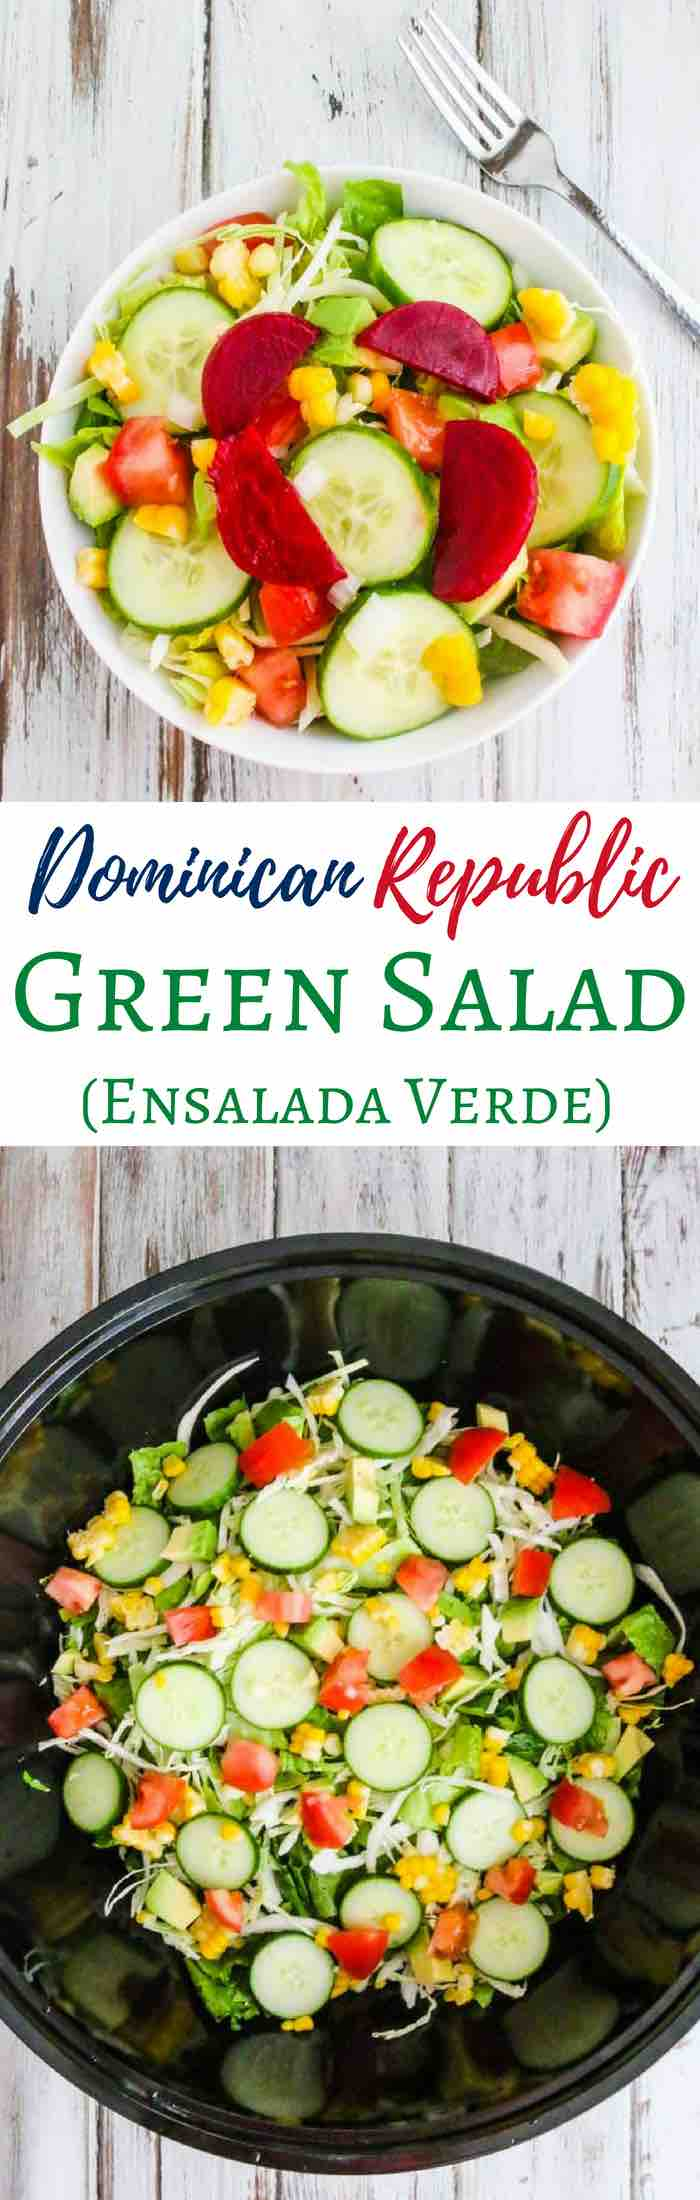 Dominican Republic Green Salad - simple, healthy delicious salad with sweet corn